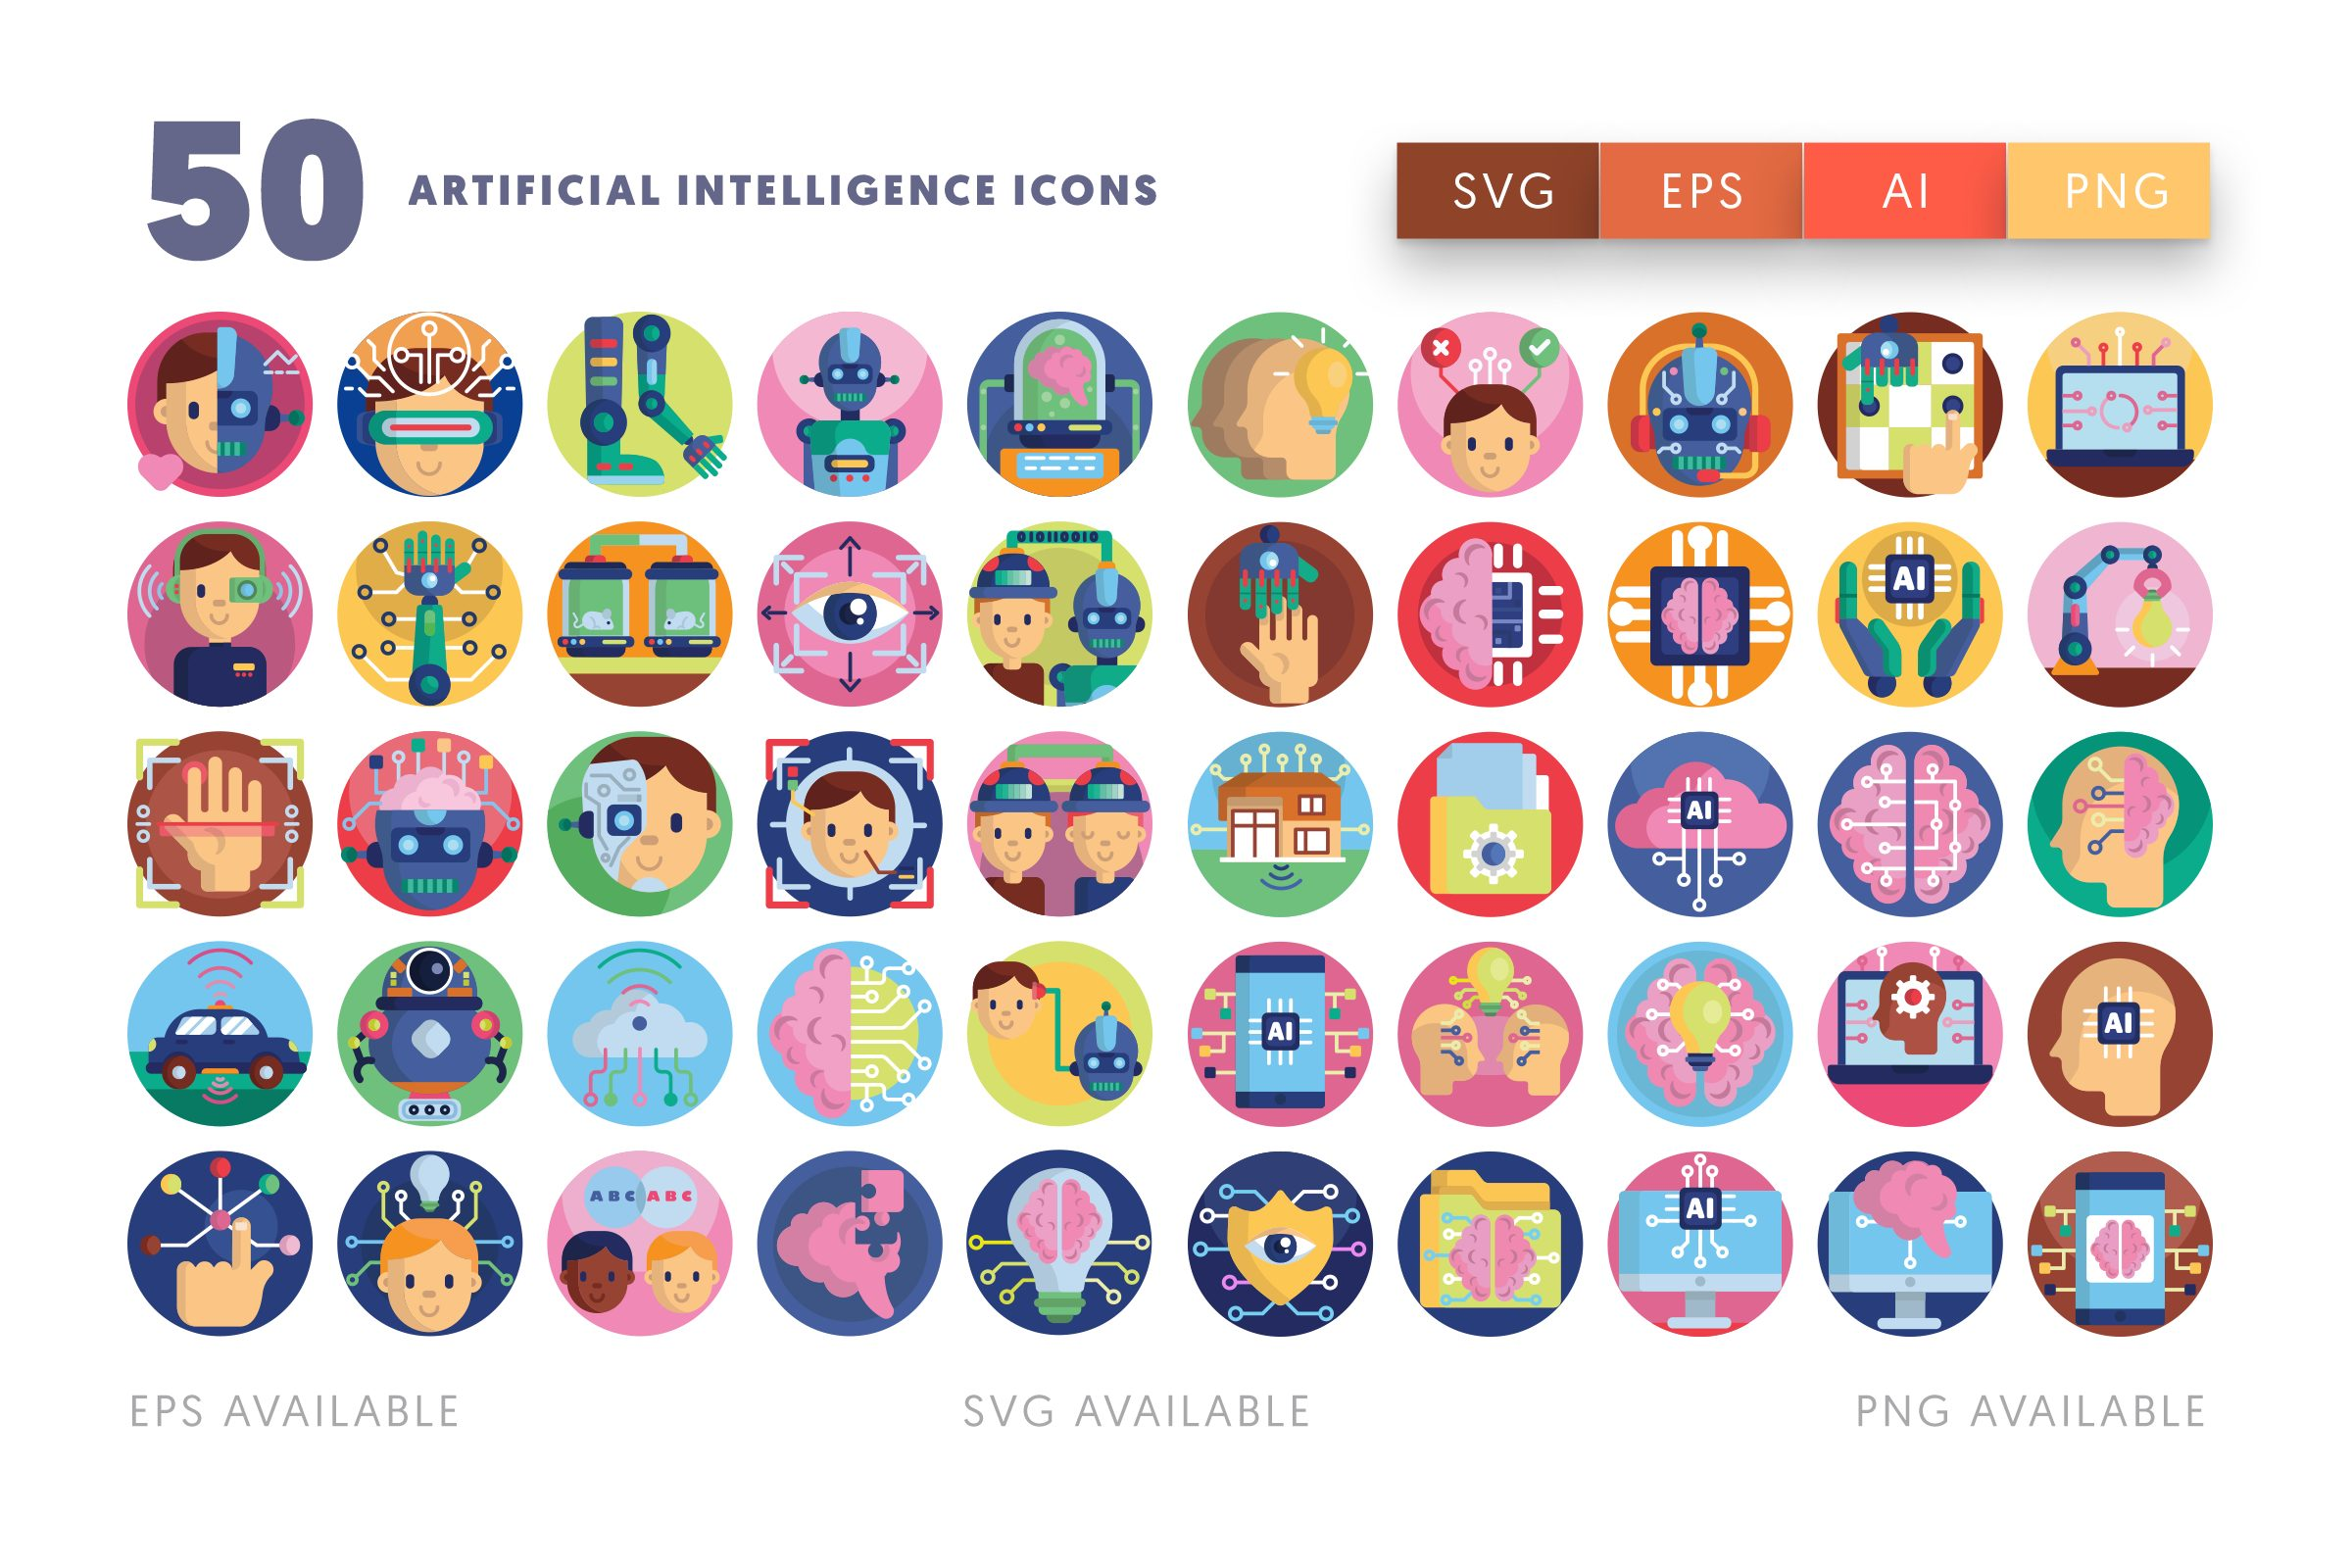 Artificial Intelligence icons png/svg/eps